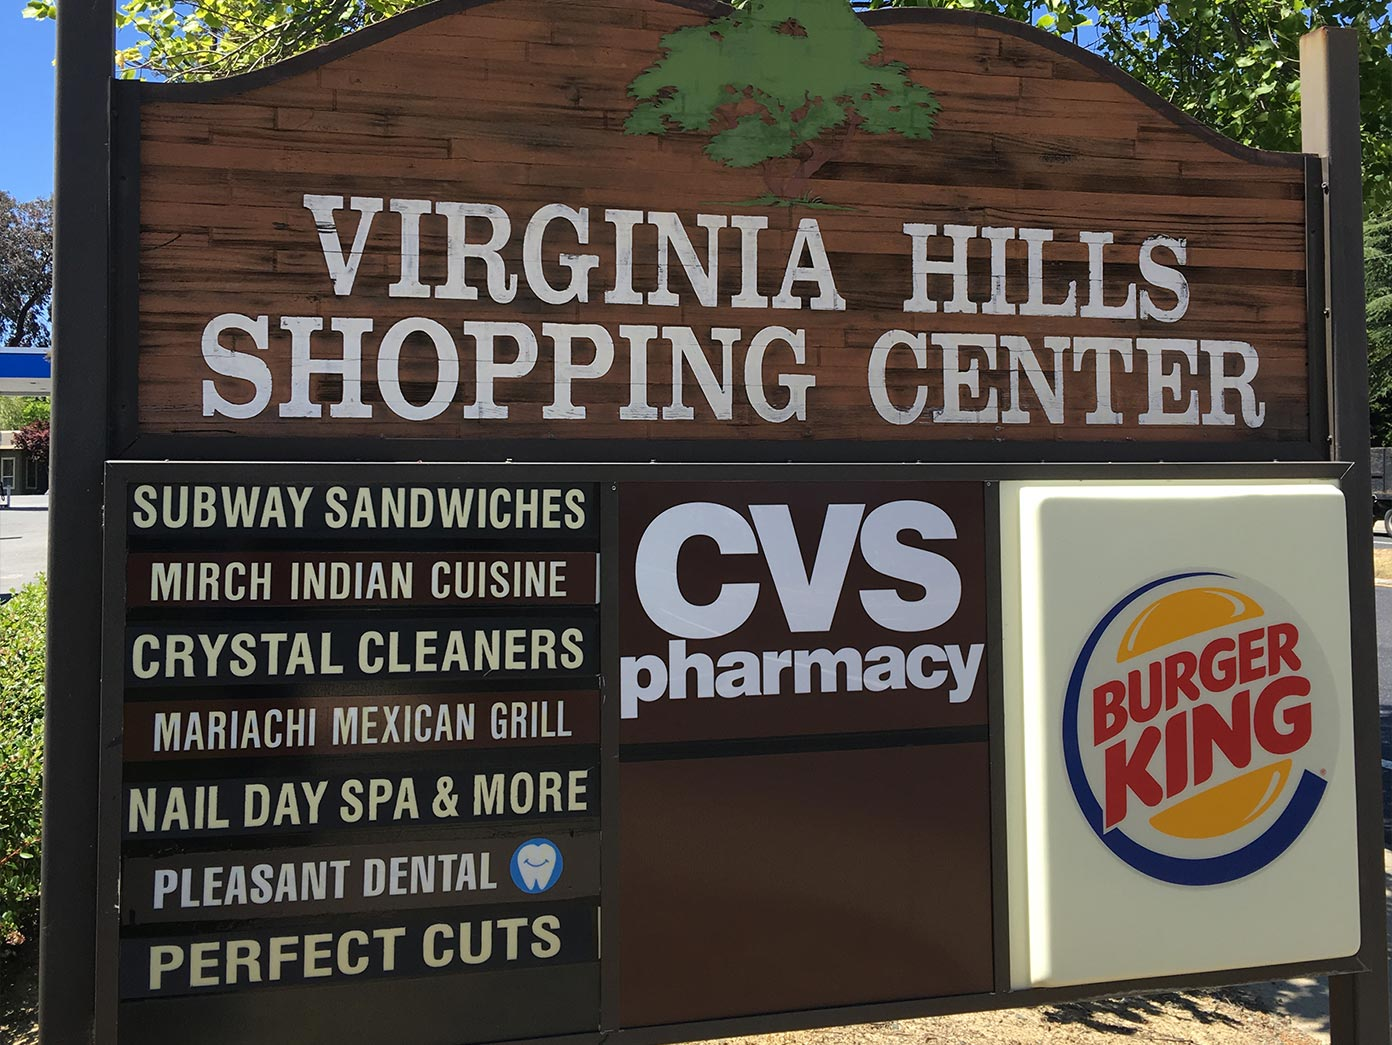 Virginia Hills Shopping Center – Cardoza Properties